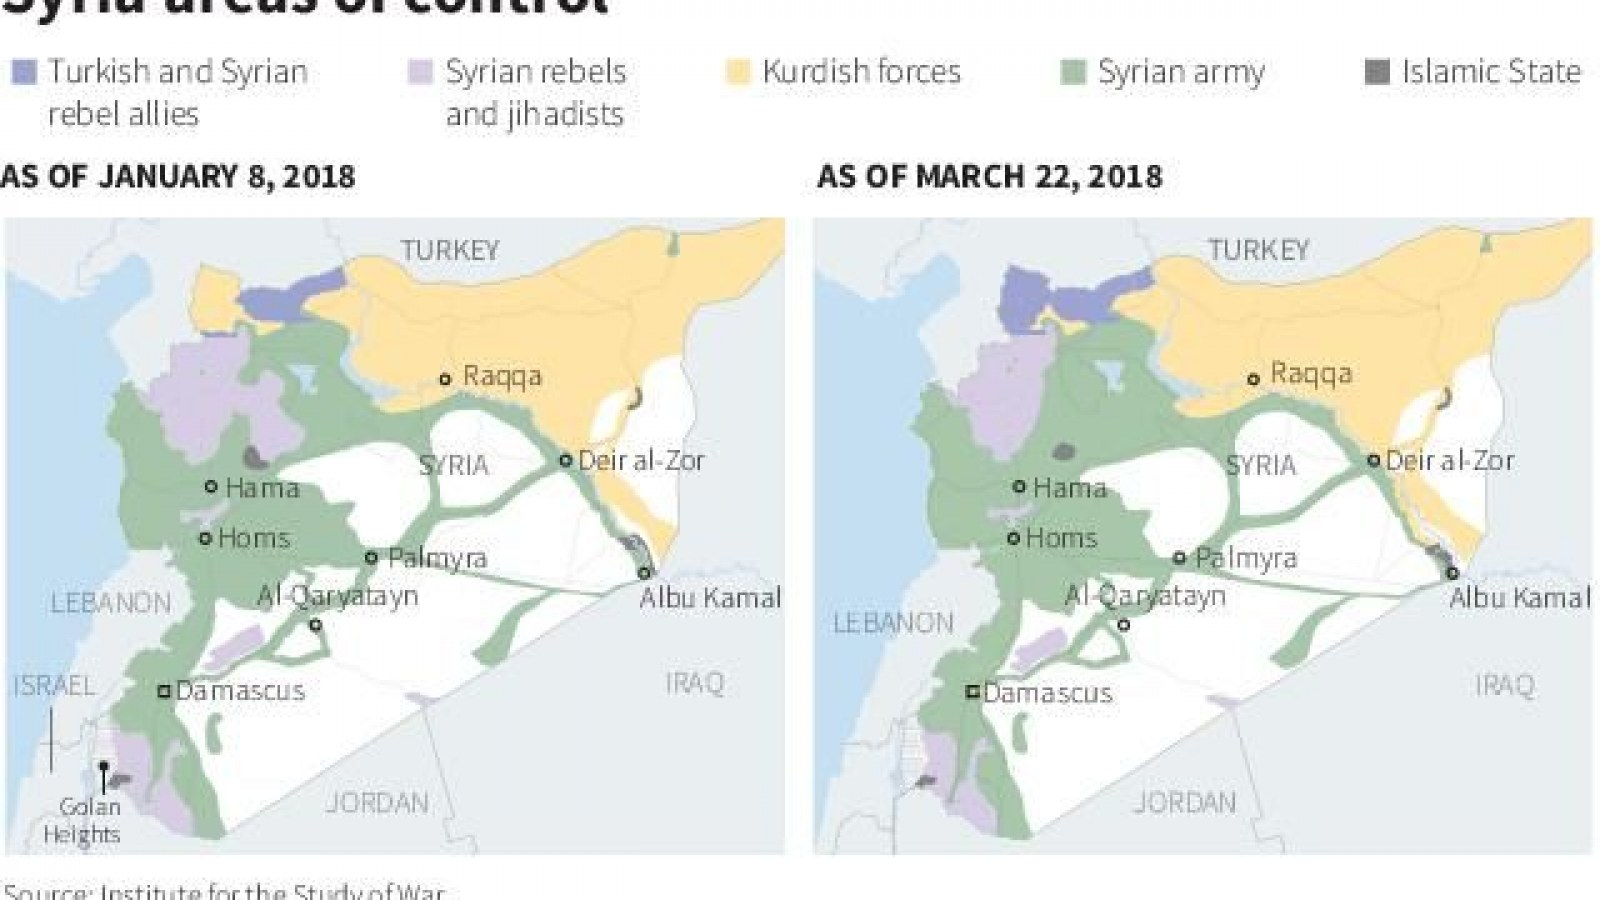 Is ISIS Gone? Syria Prepares for New Islamic State Battle as ... Damascus World Map on cairo world map, istanbul world map, beirut world map, thebes world map, delhi on world map, ashgabat world map, basra world map, naples world map, mecca world map, middle east map, arabia world map, calicut on world map, harappa world map, algiers world map, samarkand world map, tehran world map, timbuktu world map, jerusalem world map, tripoli world map, palestine world map,